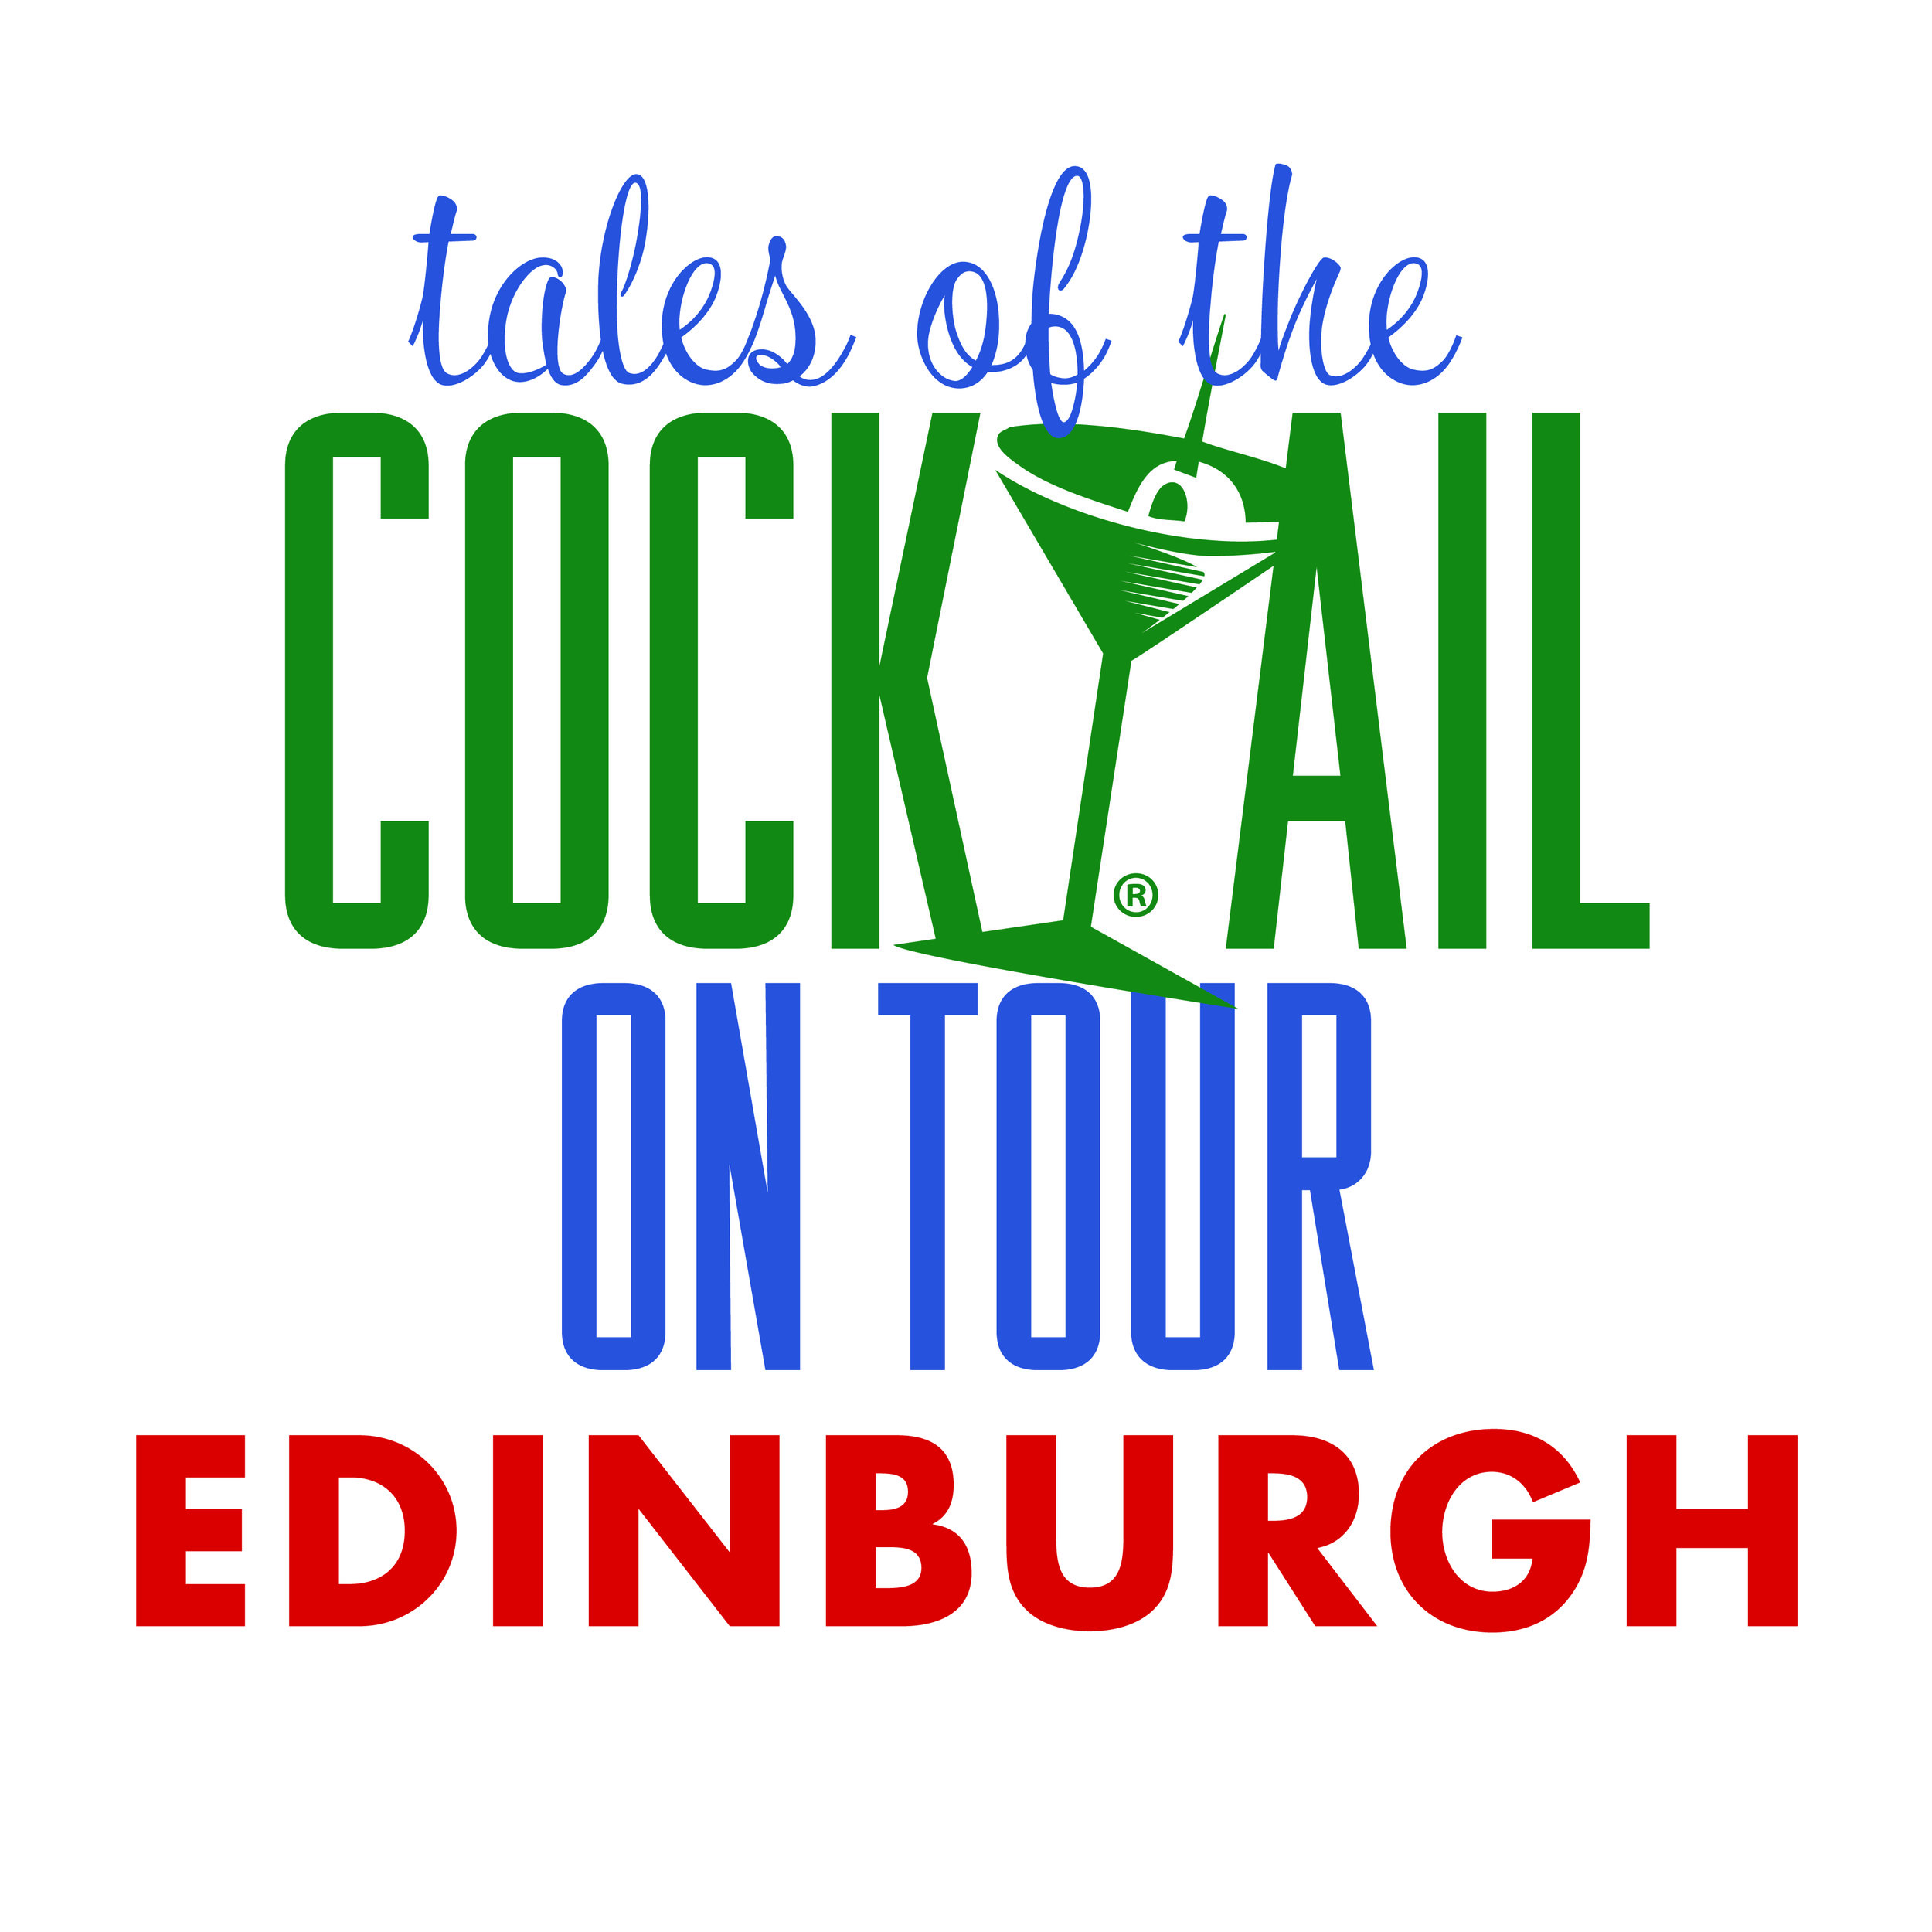 Tales of the Cocktail logo copy.jpg